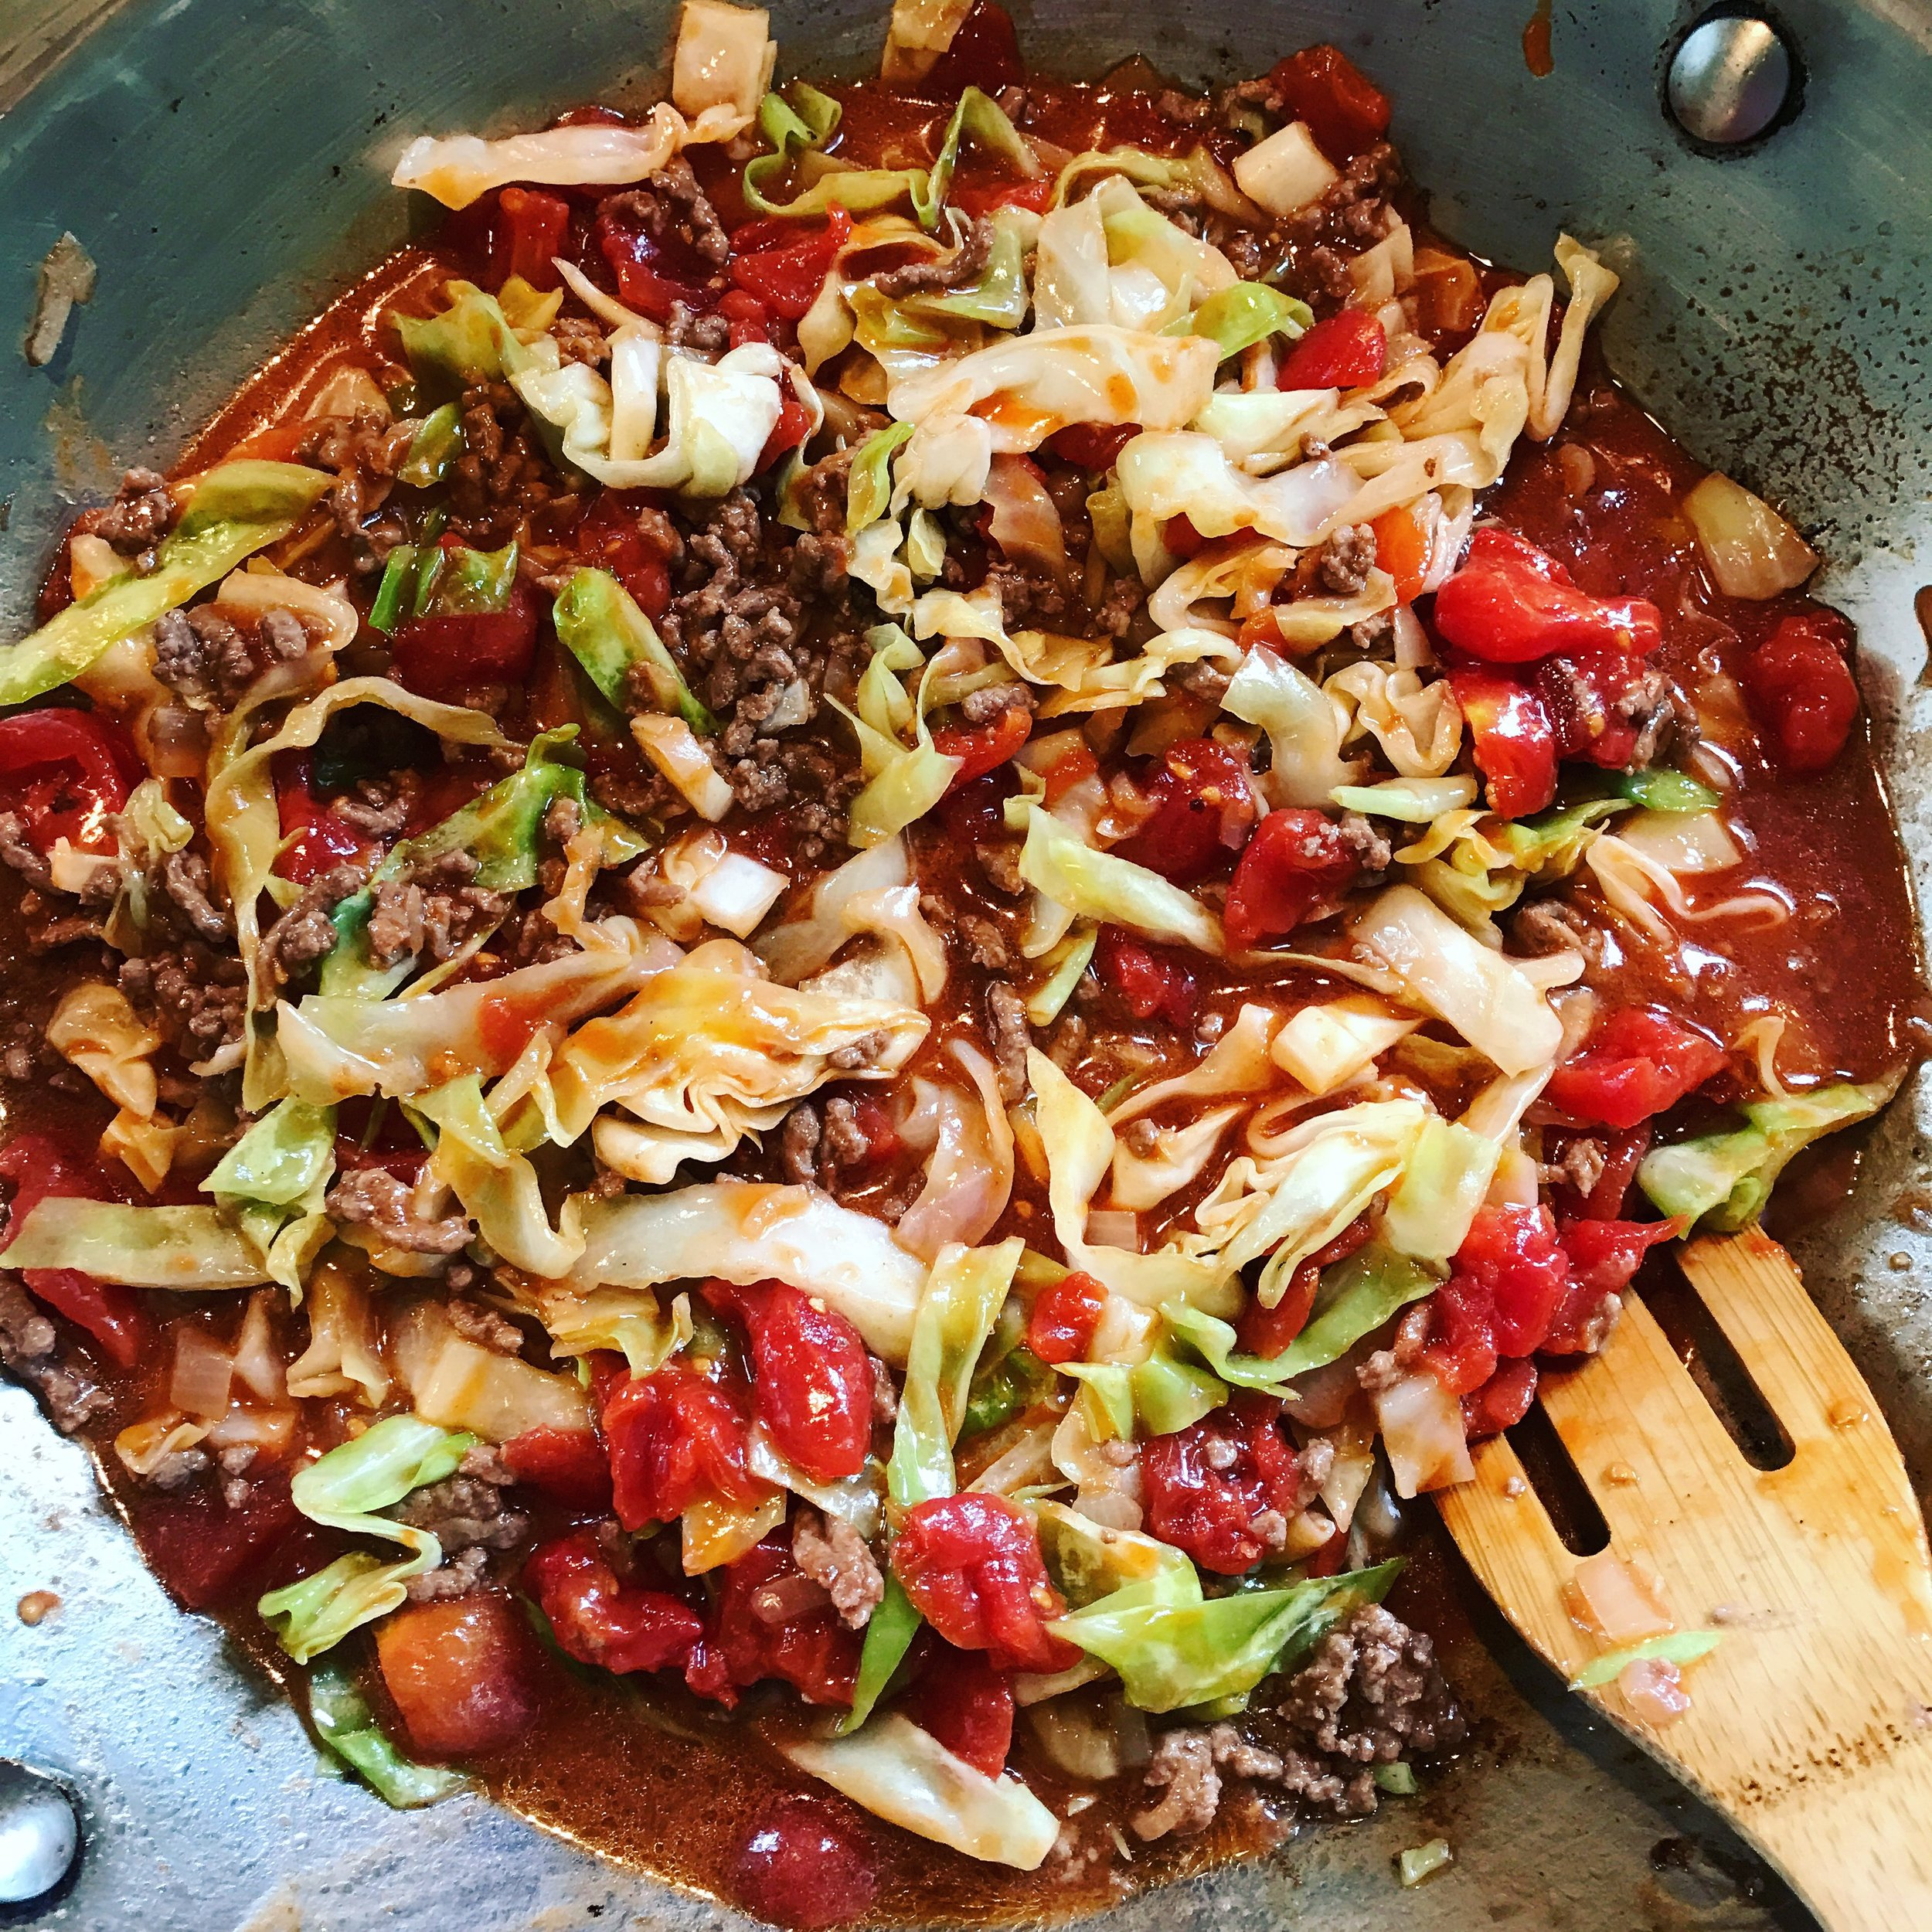 Deconstructed Cabbage Rolls recipe made with bone broth created by Bone Brewhouse.